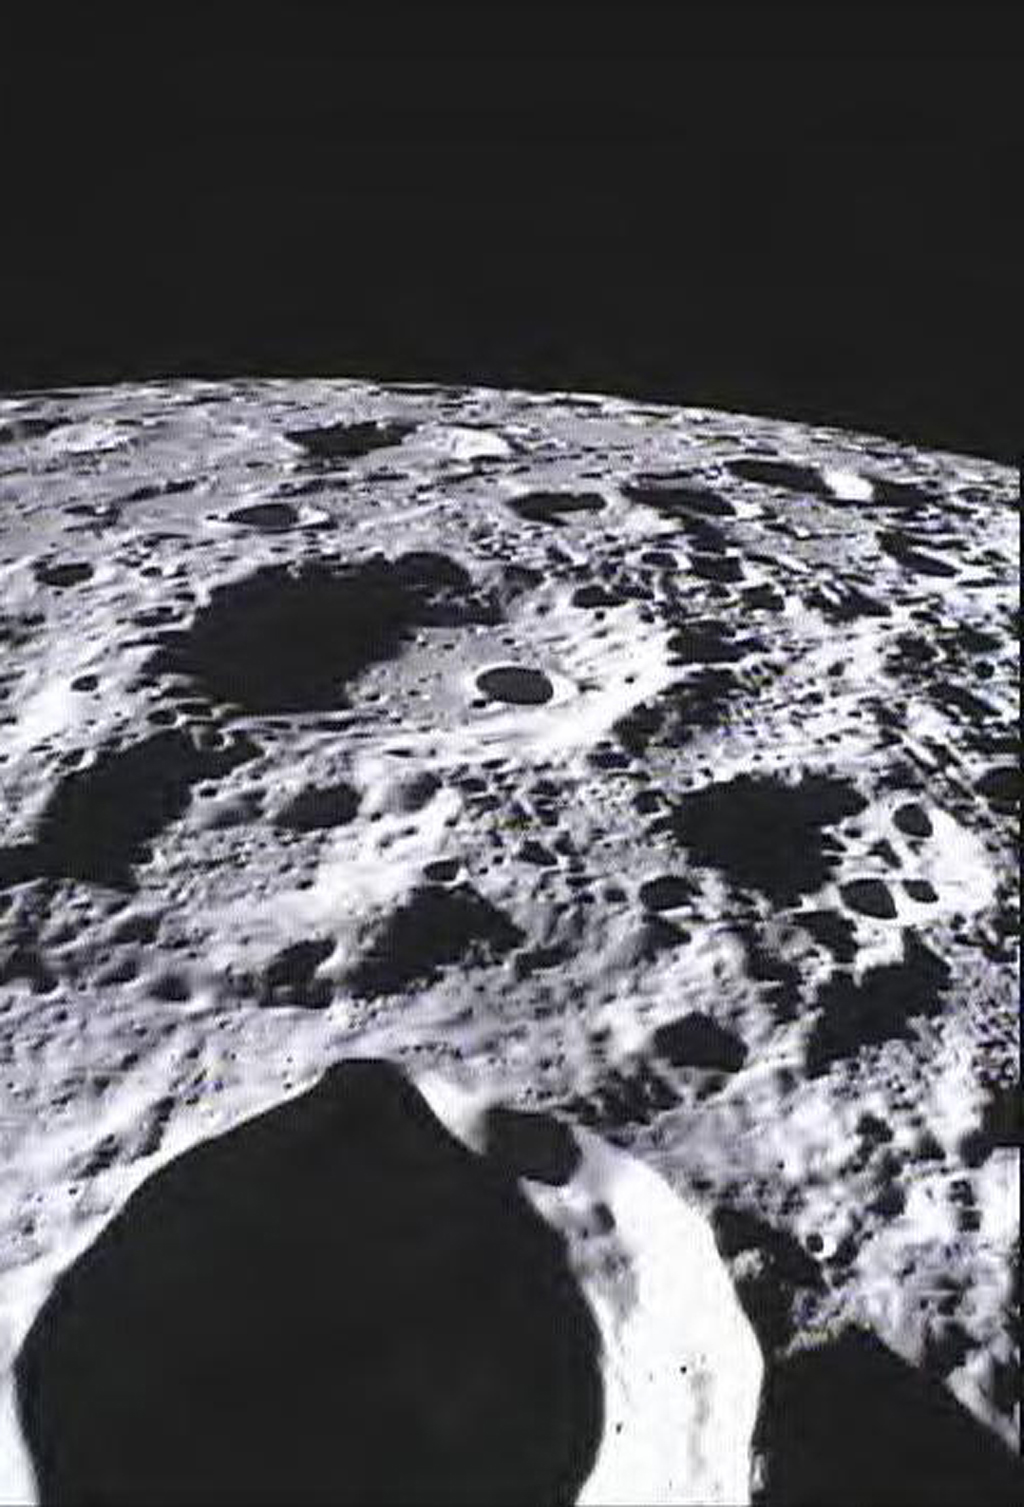 Space Images Far Side Of Moon Imaged By MoonKAM